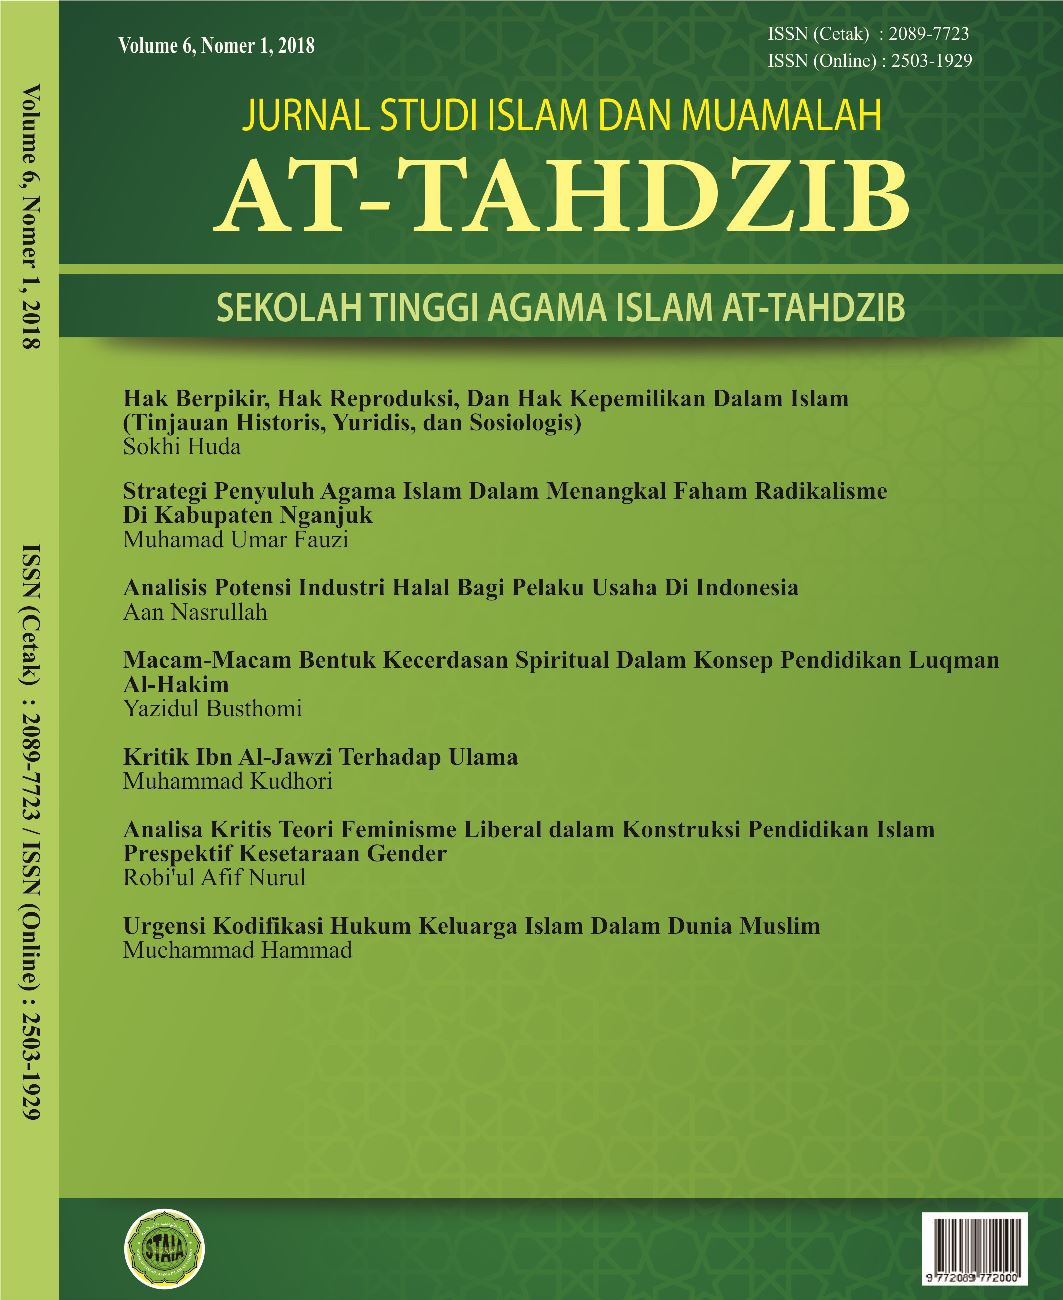 cover at-tahdzib jurnal studi islam